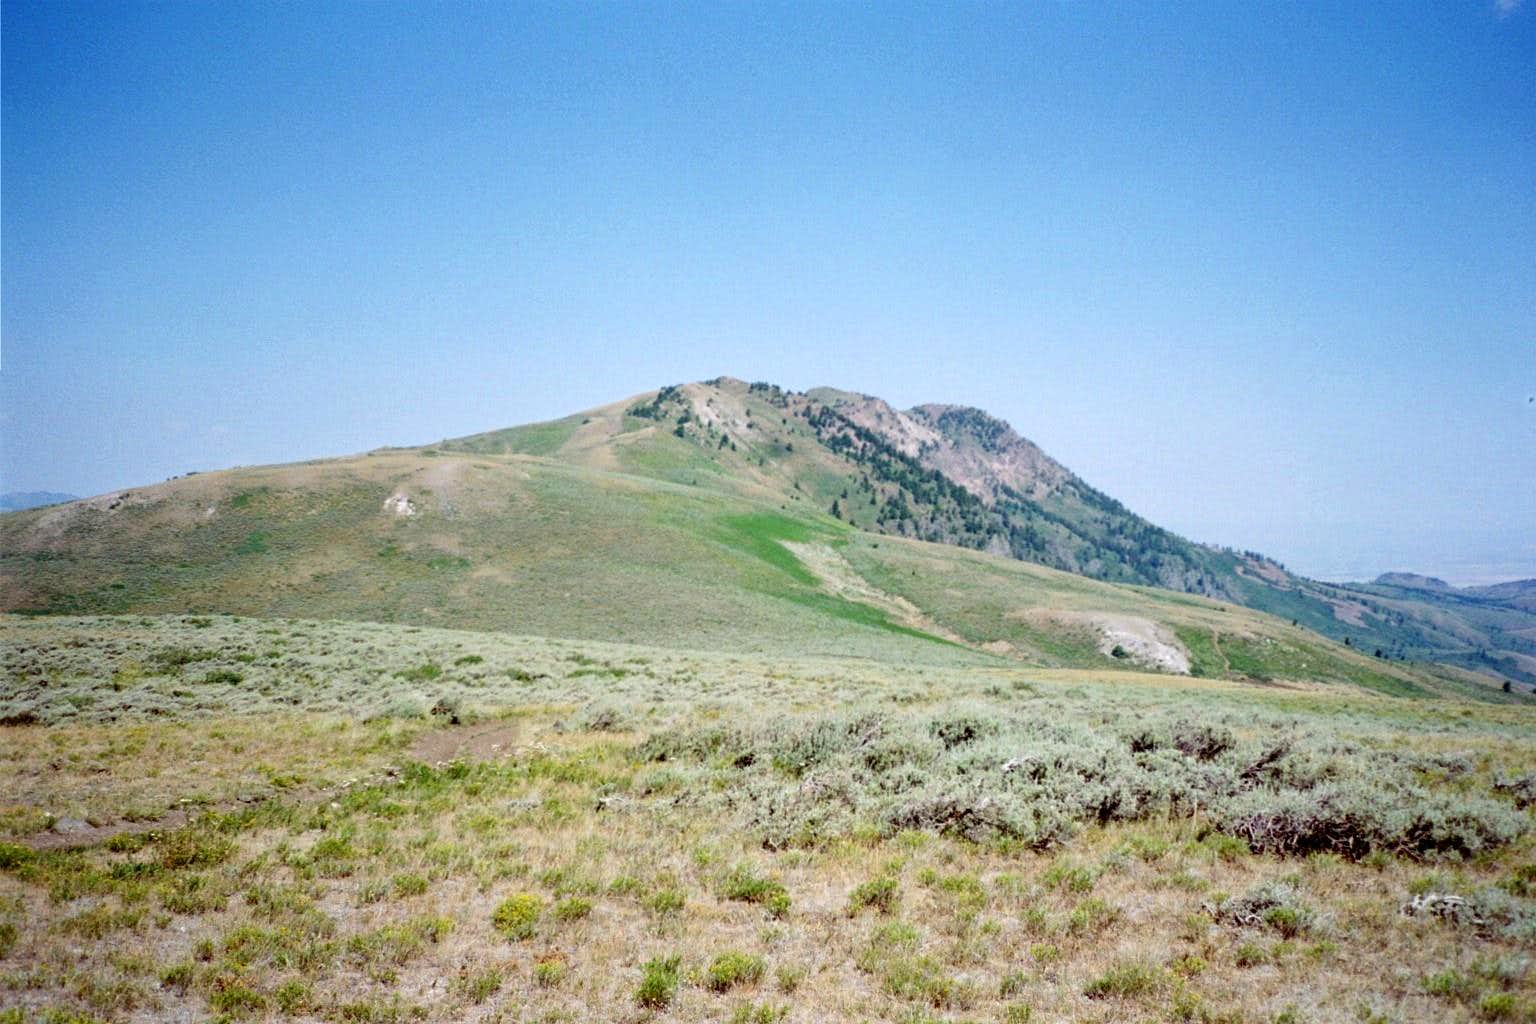 Oxford Peak